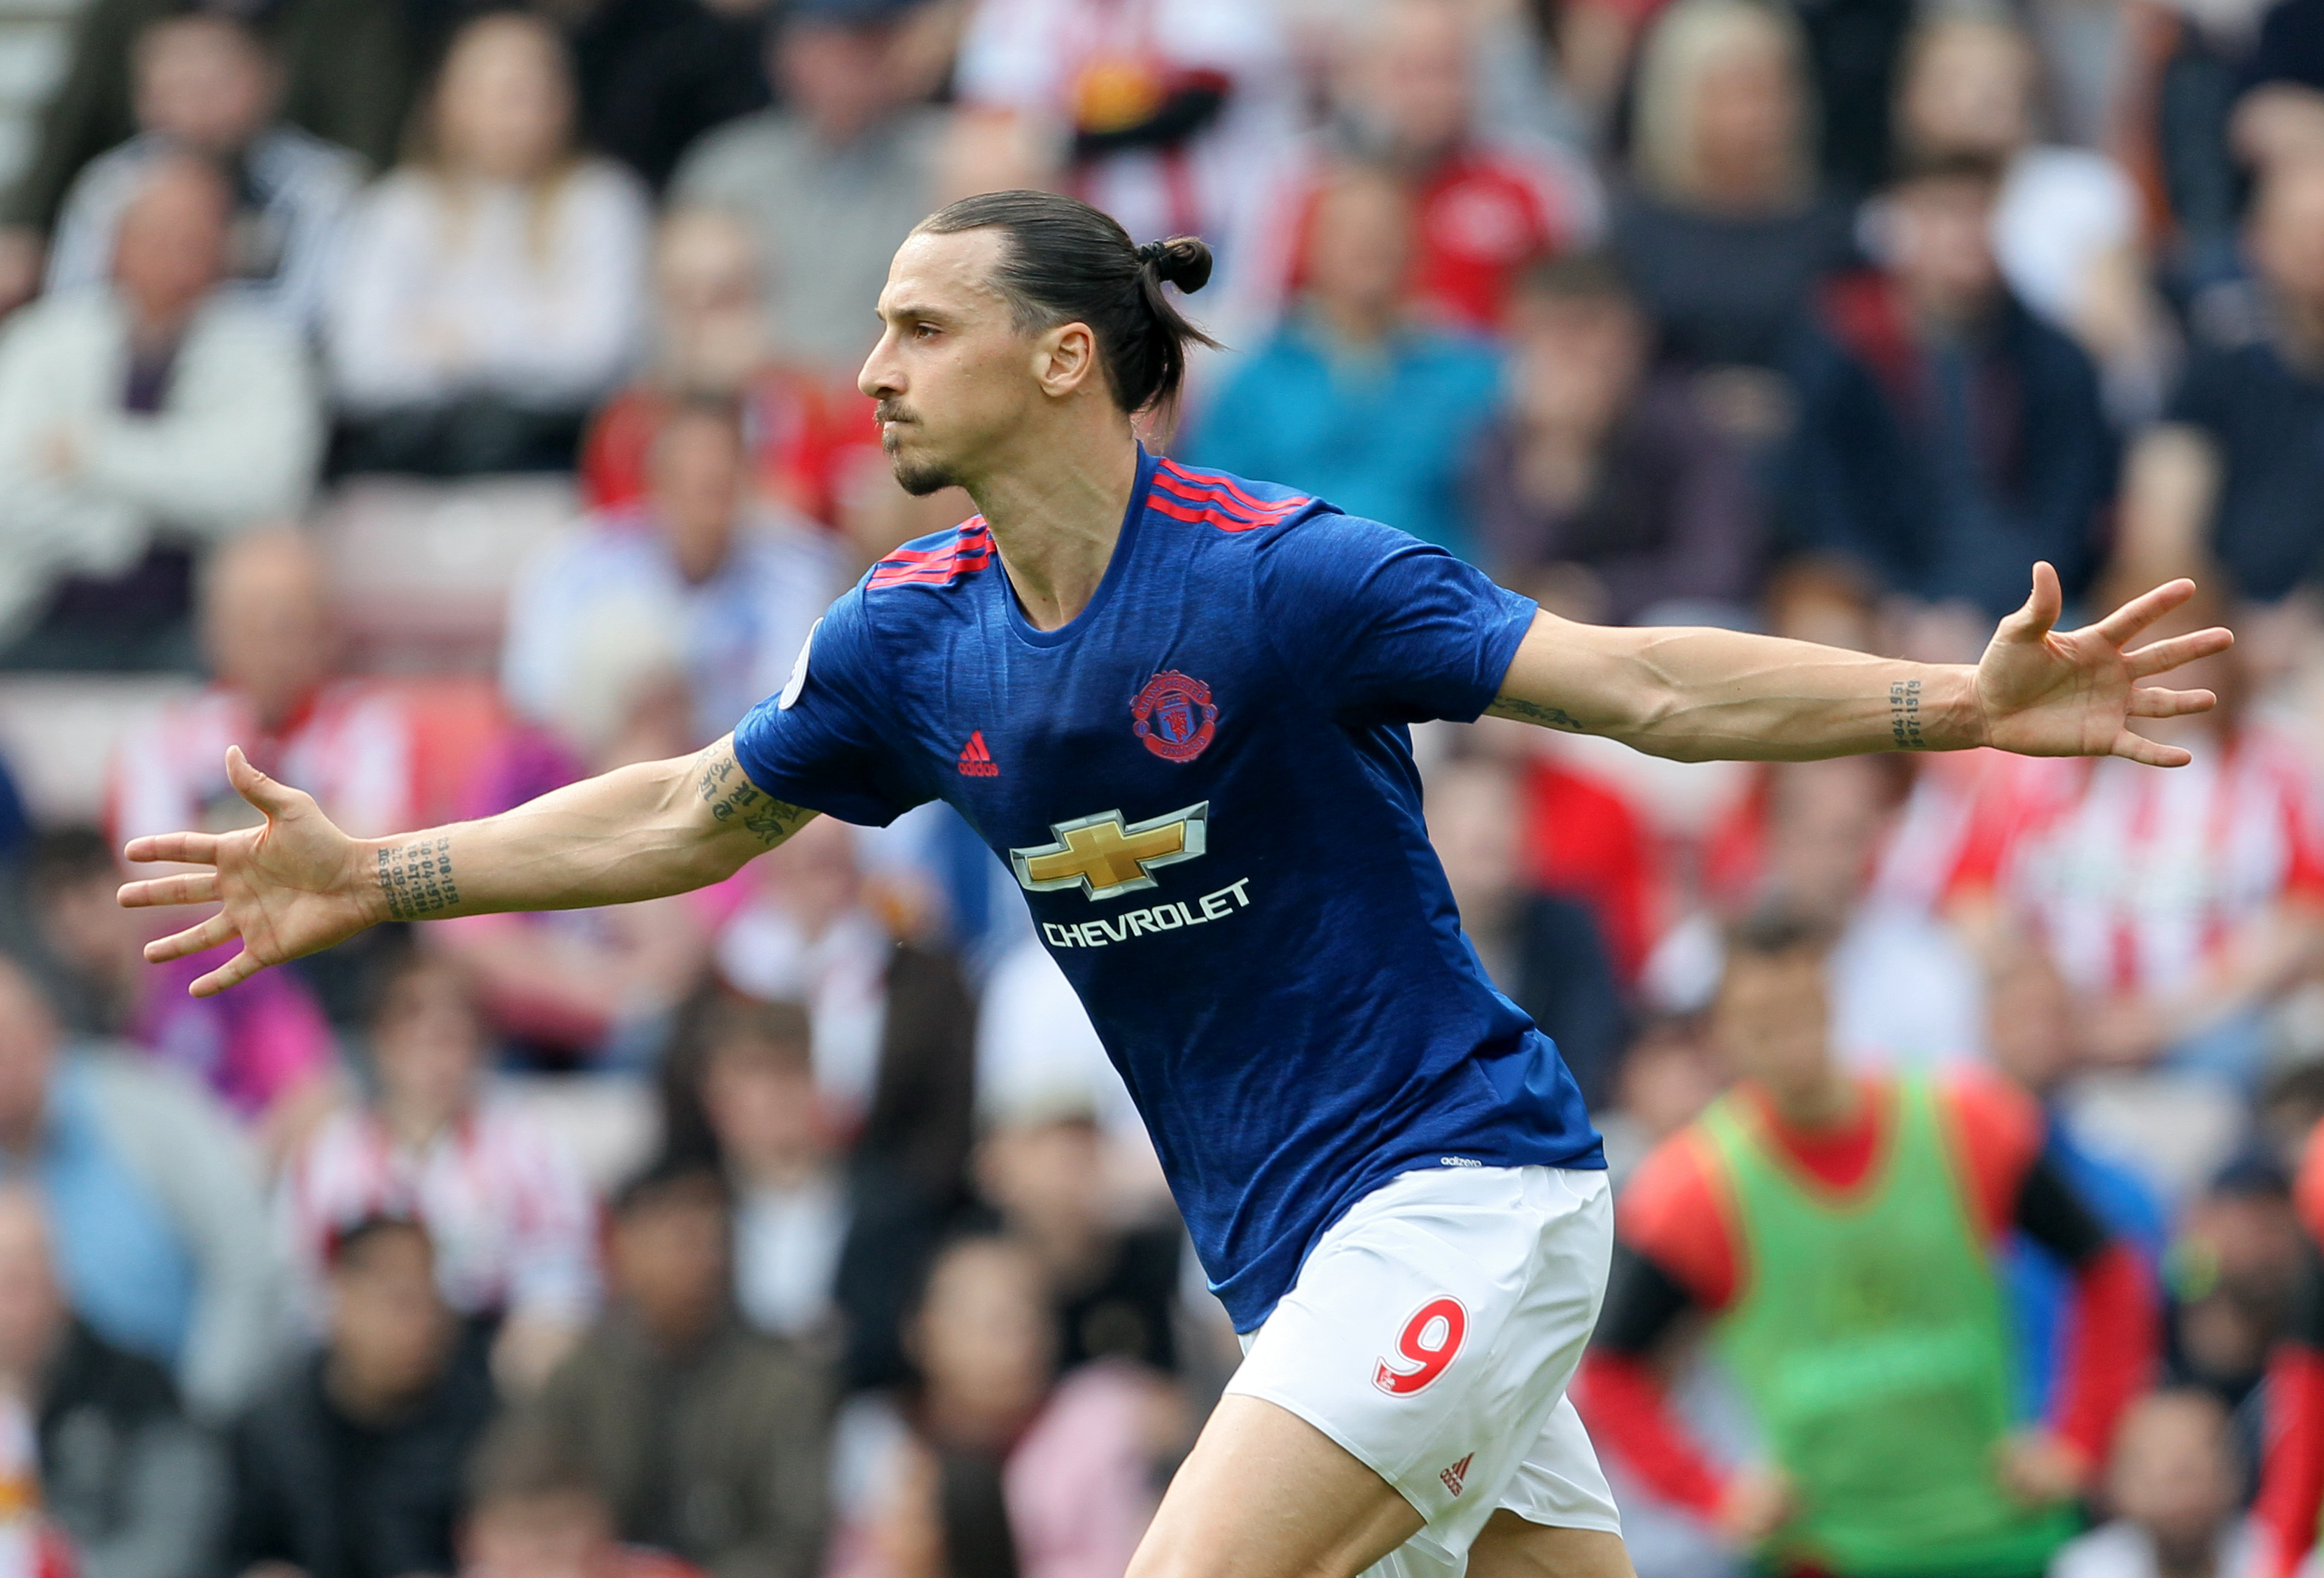 Mata reveals that Ibrahimovic refers to himself as God at Manchester United